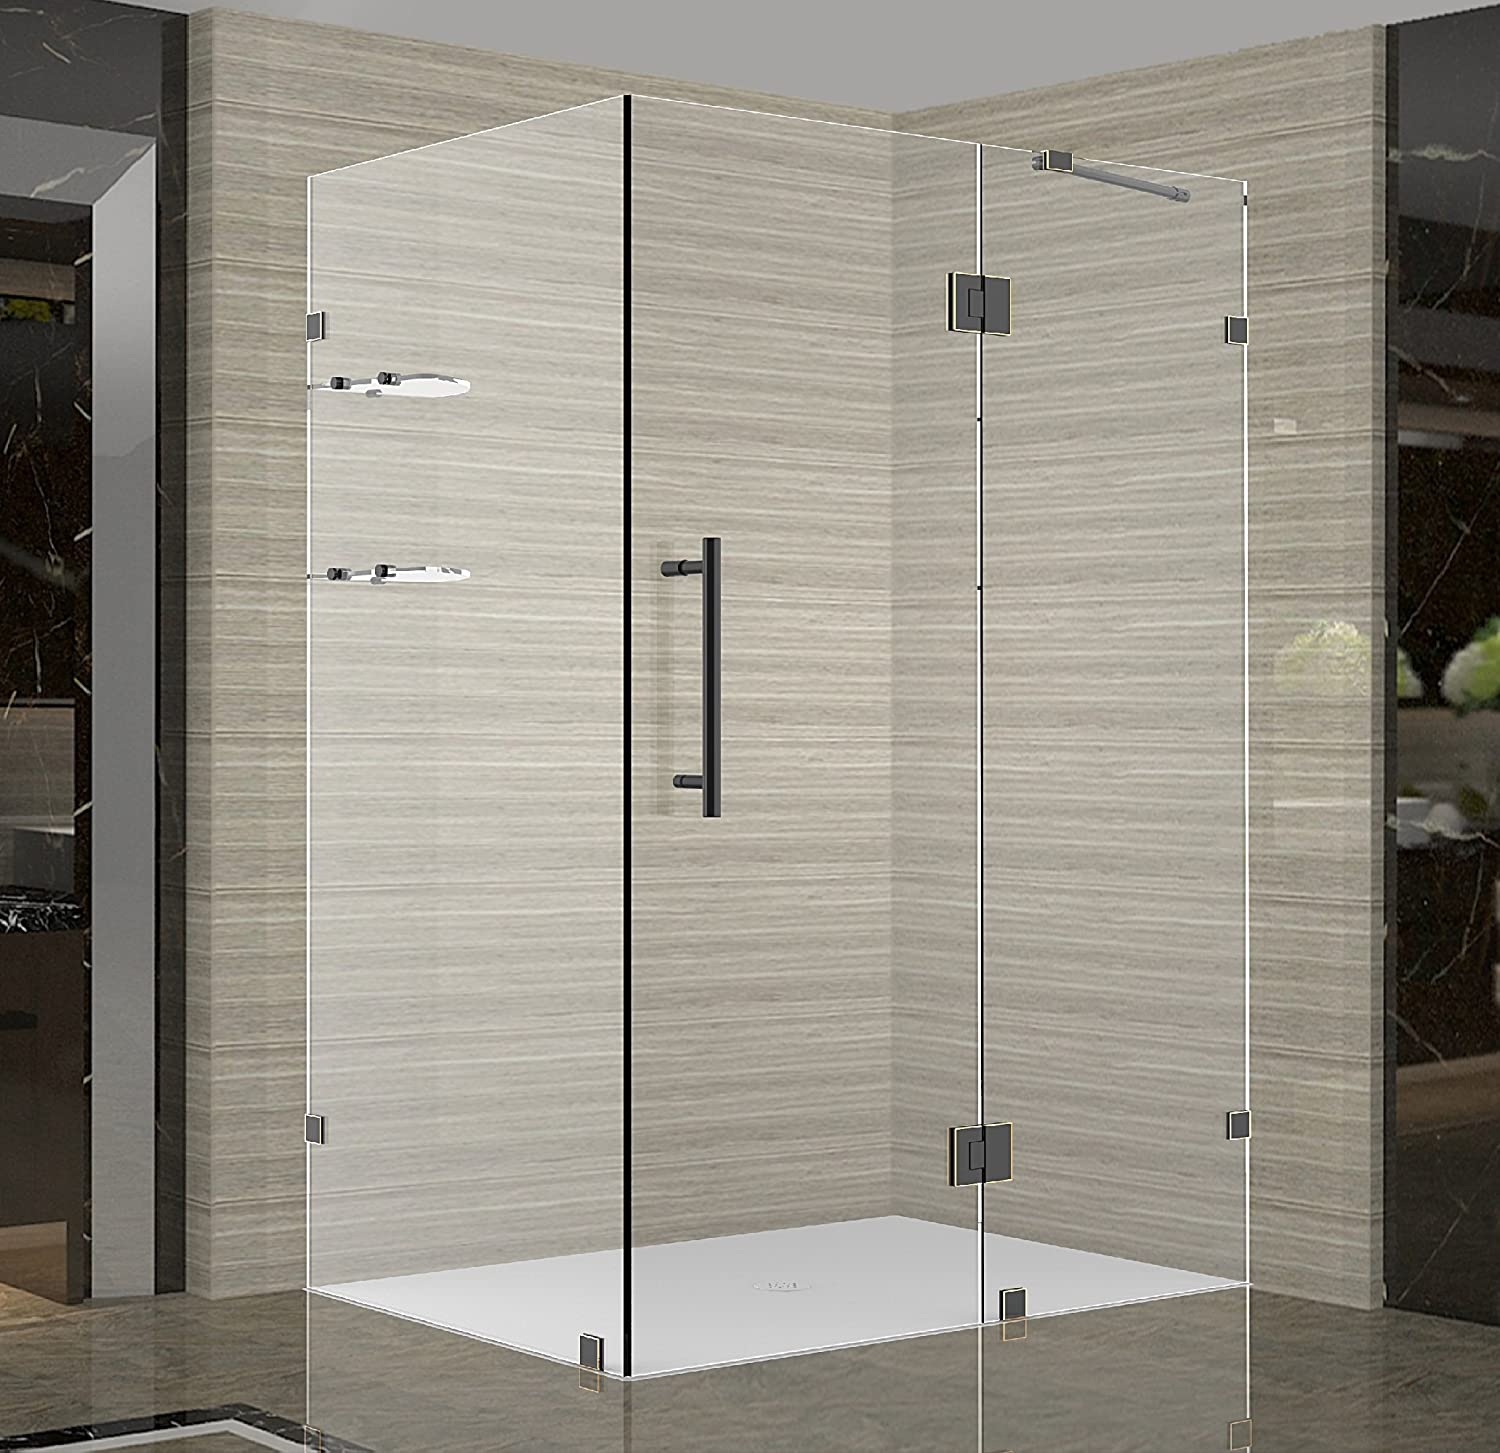 Aston Avalux Gs Completely Frameless Shower Enclosure With Glass Shelves 48 X 32 X 72 Oil Rubbed Bronze